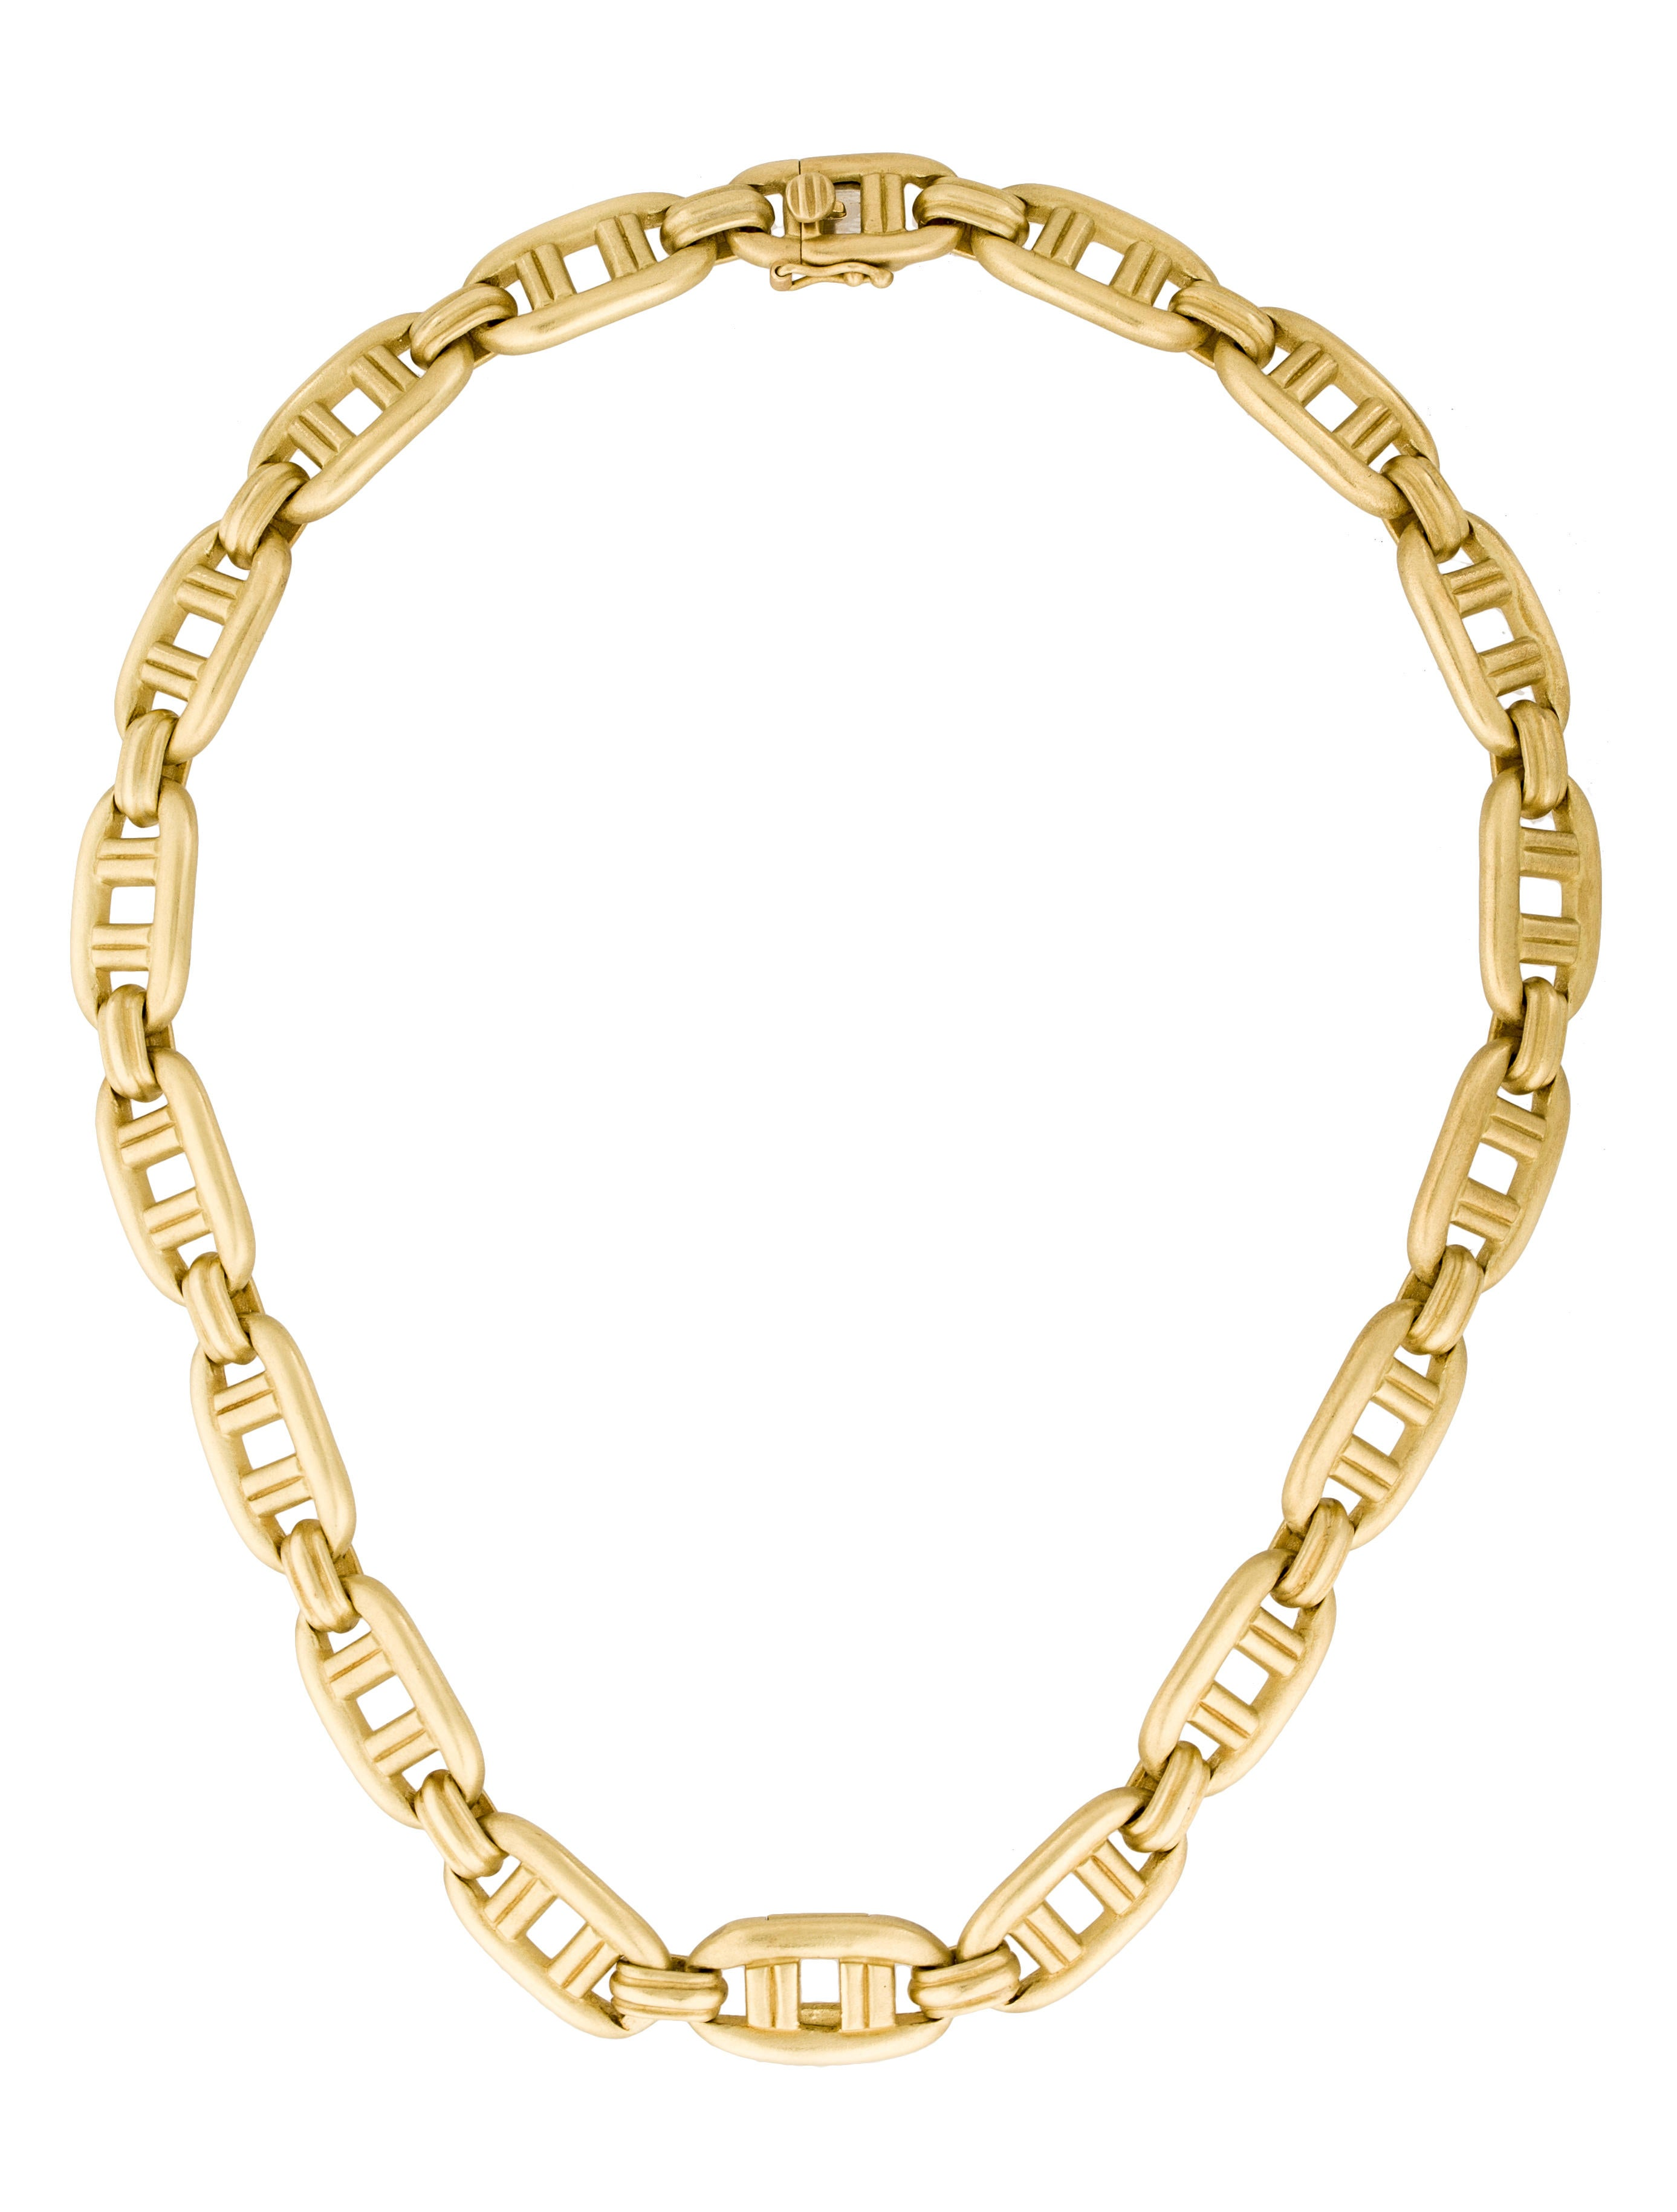 Barry kieselstein cord 18k chain link necklace necklaces for Barry kieselstein cord jewelry